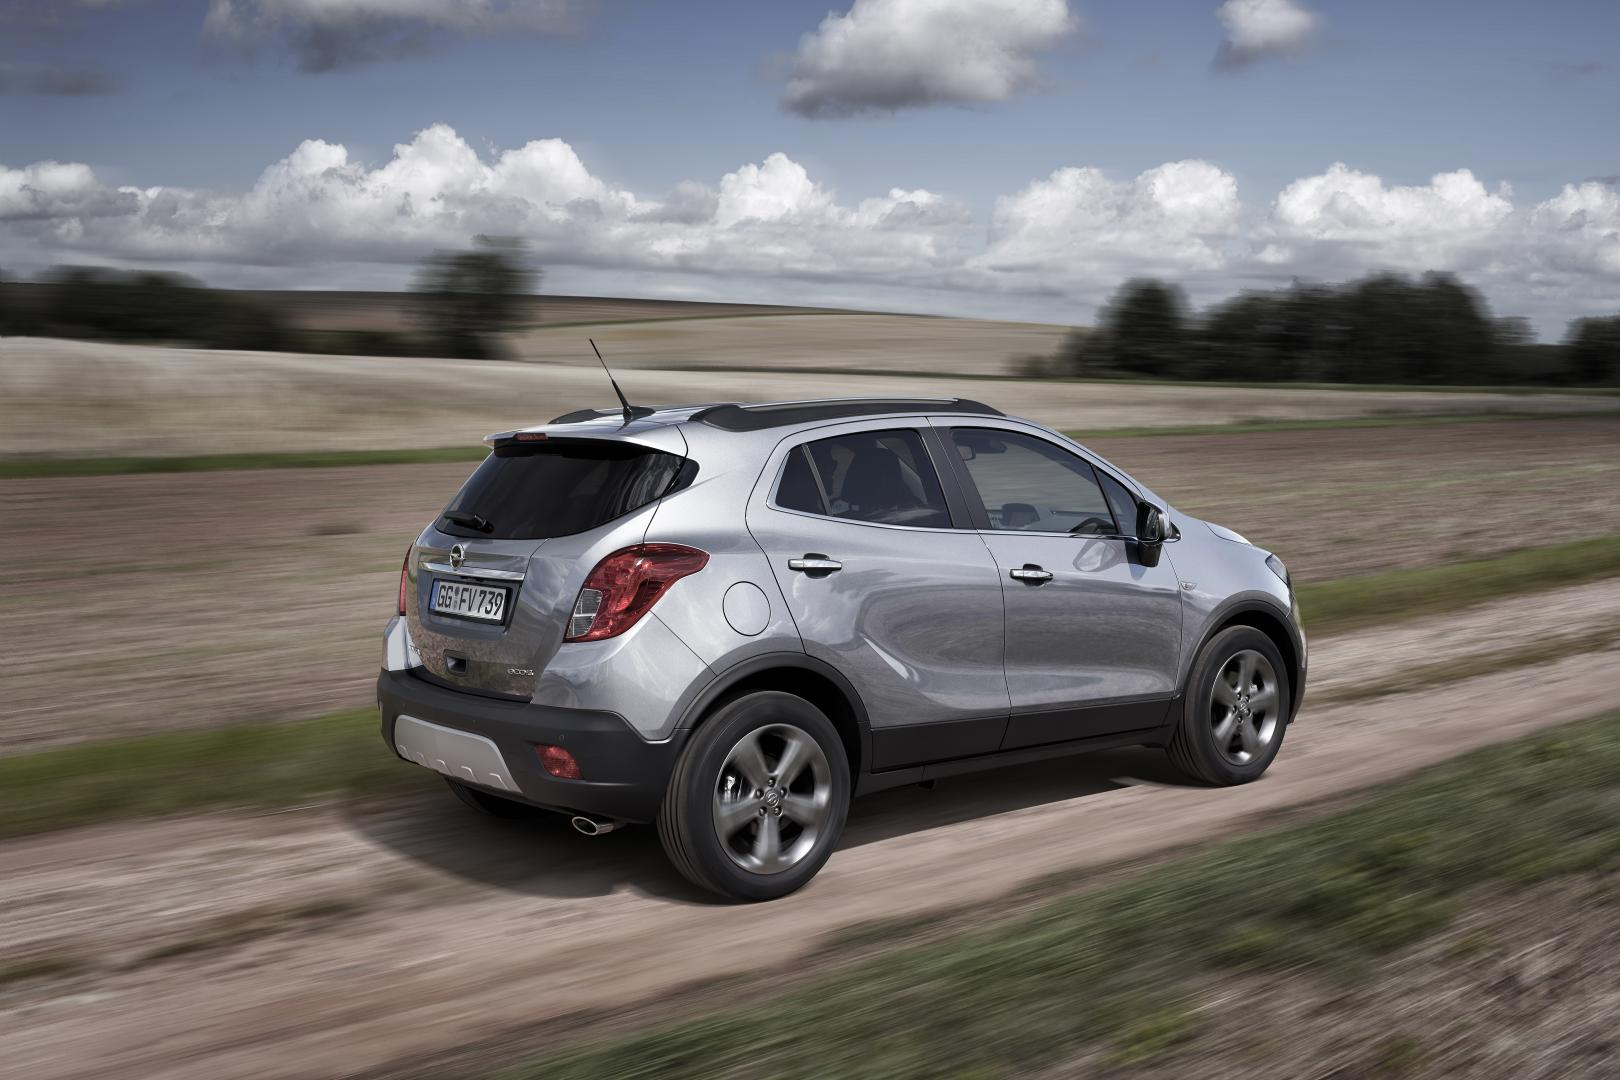 opel mokka 1 6 cdti 4x4 2015 test en specificaties topgear. Black Bedroom Furniture Sets. Home Design Ideas